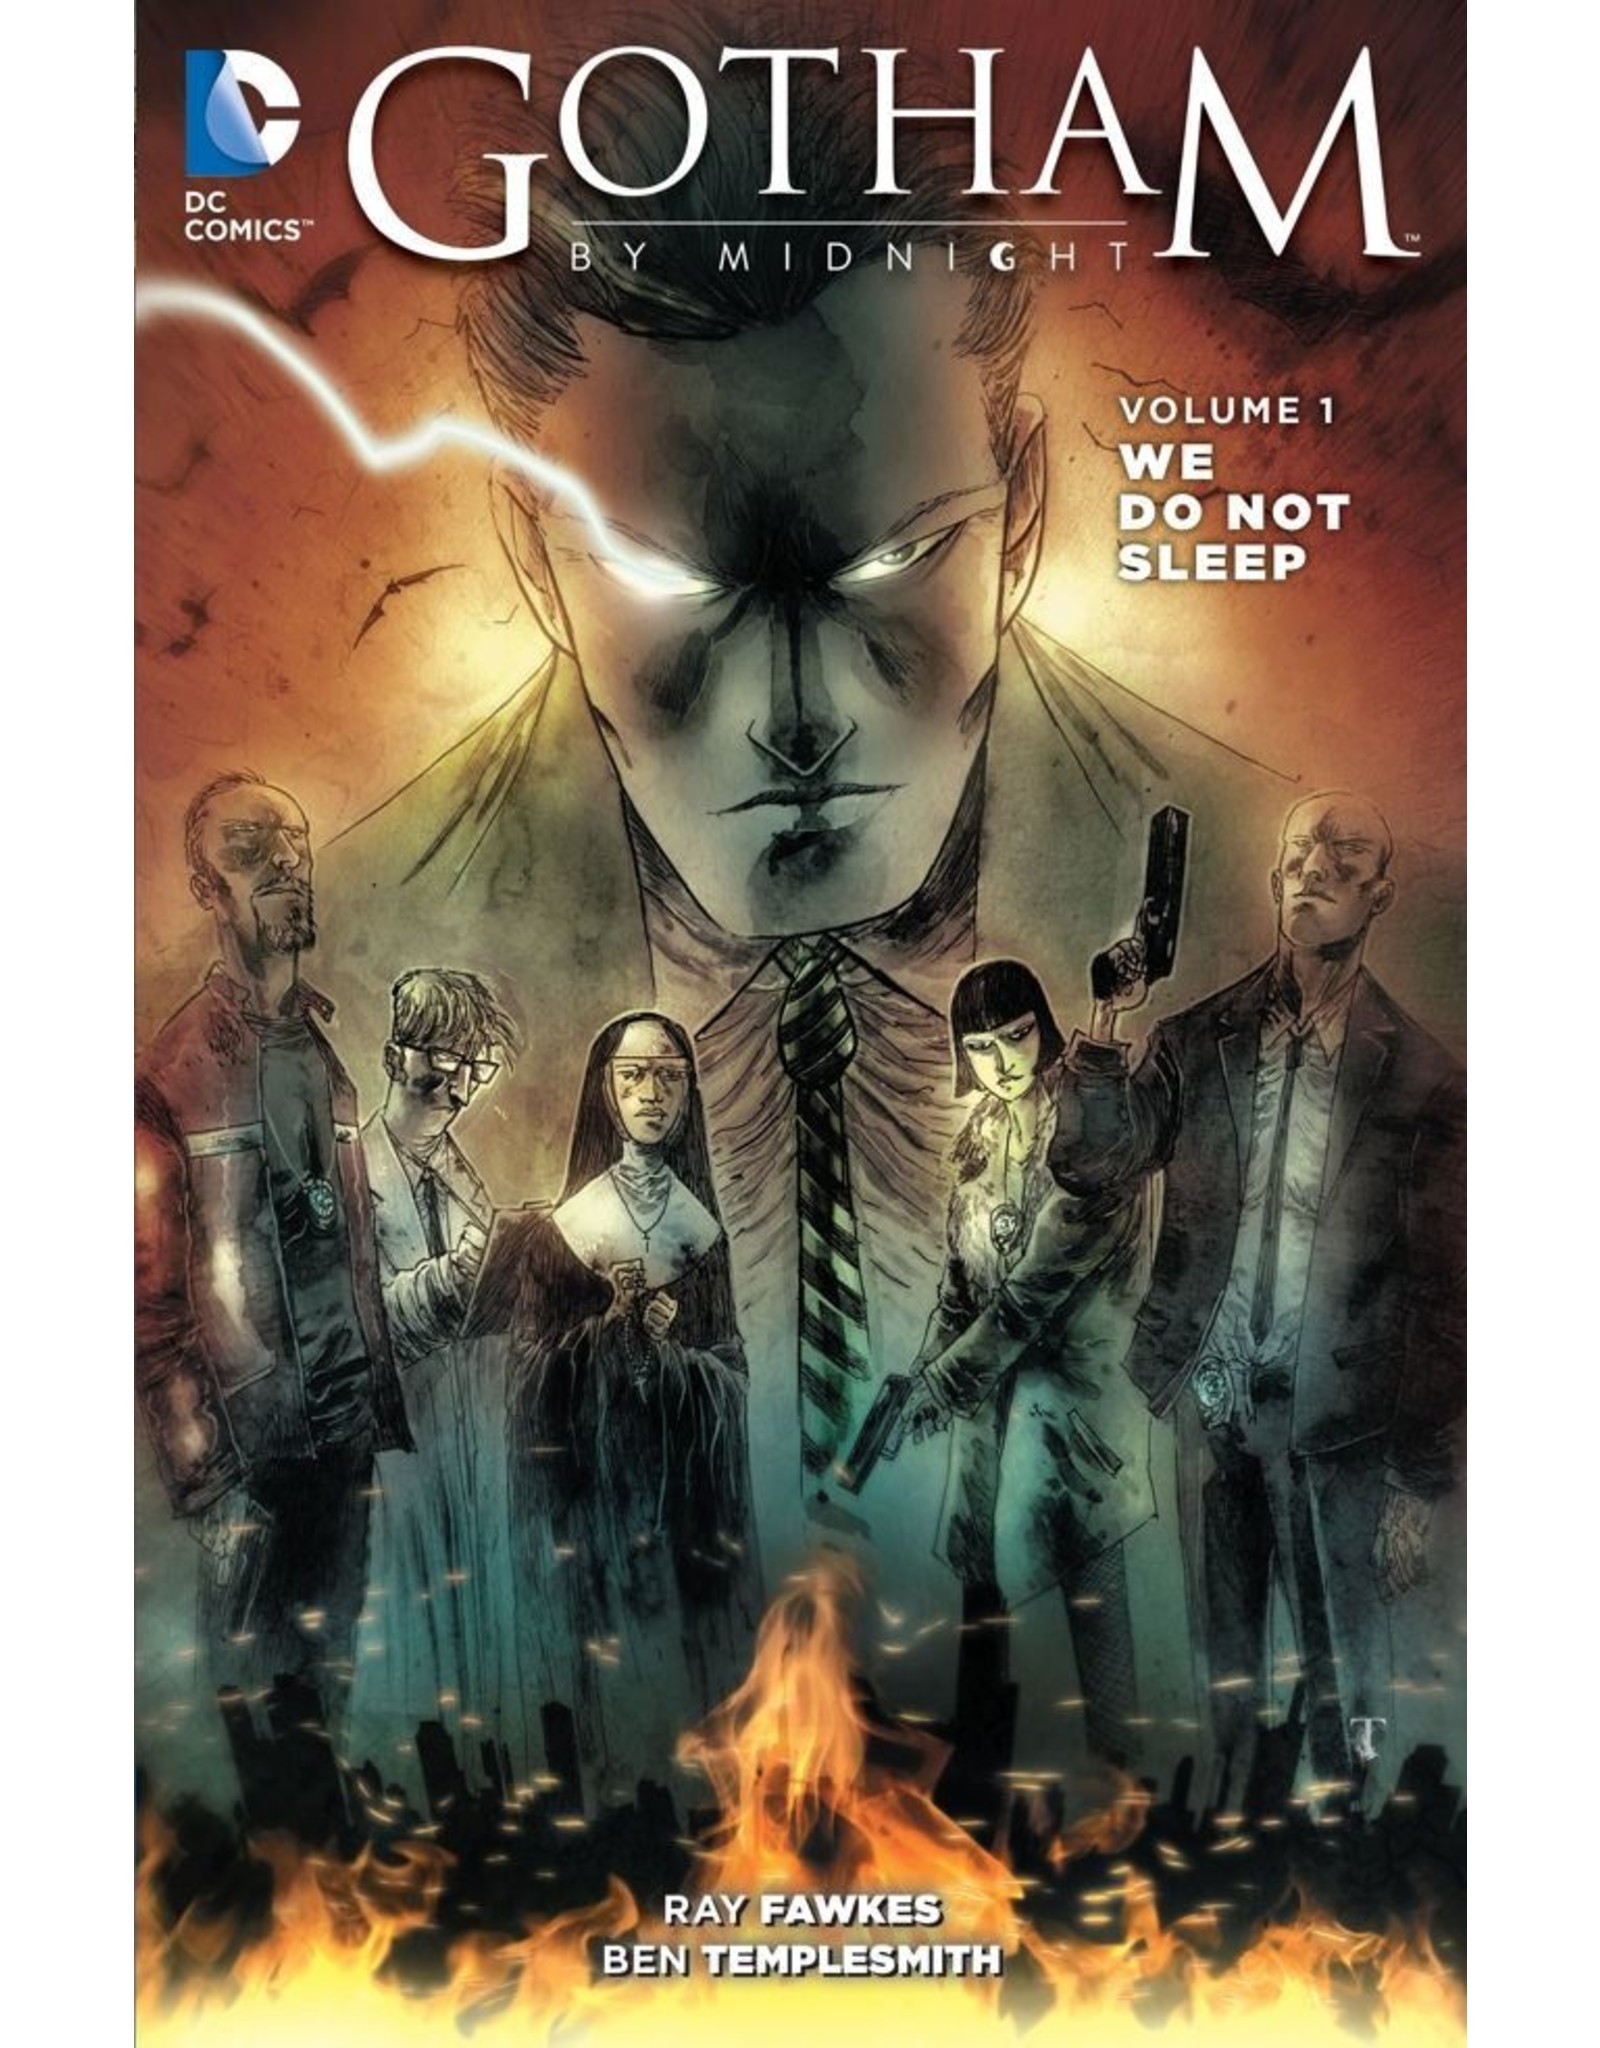 DC COMICS GOTHAM BY MIDNIGHT TP VOL 01 WE DO NOT SLEEP